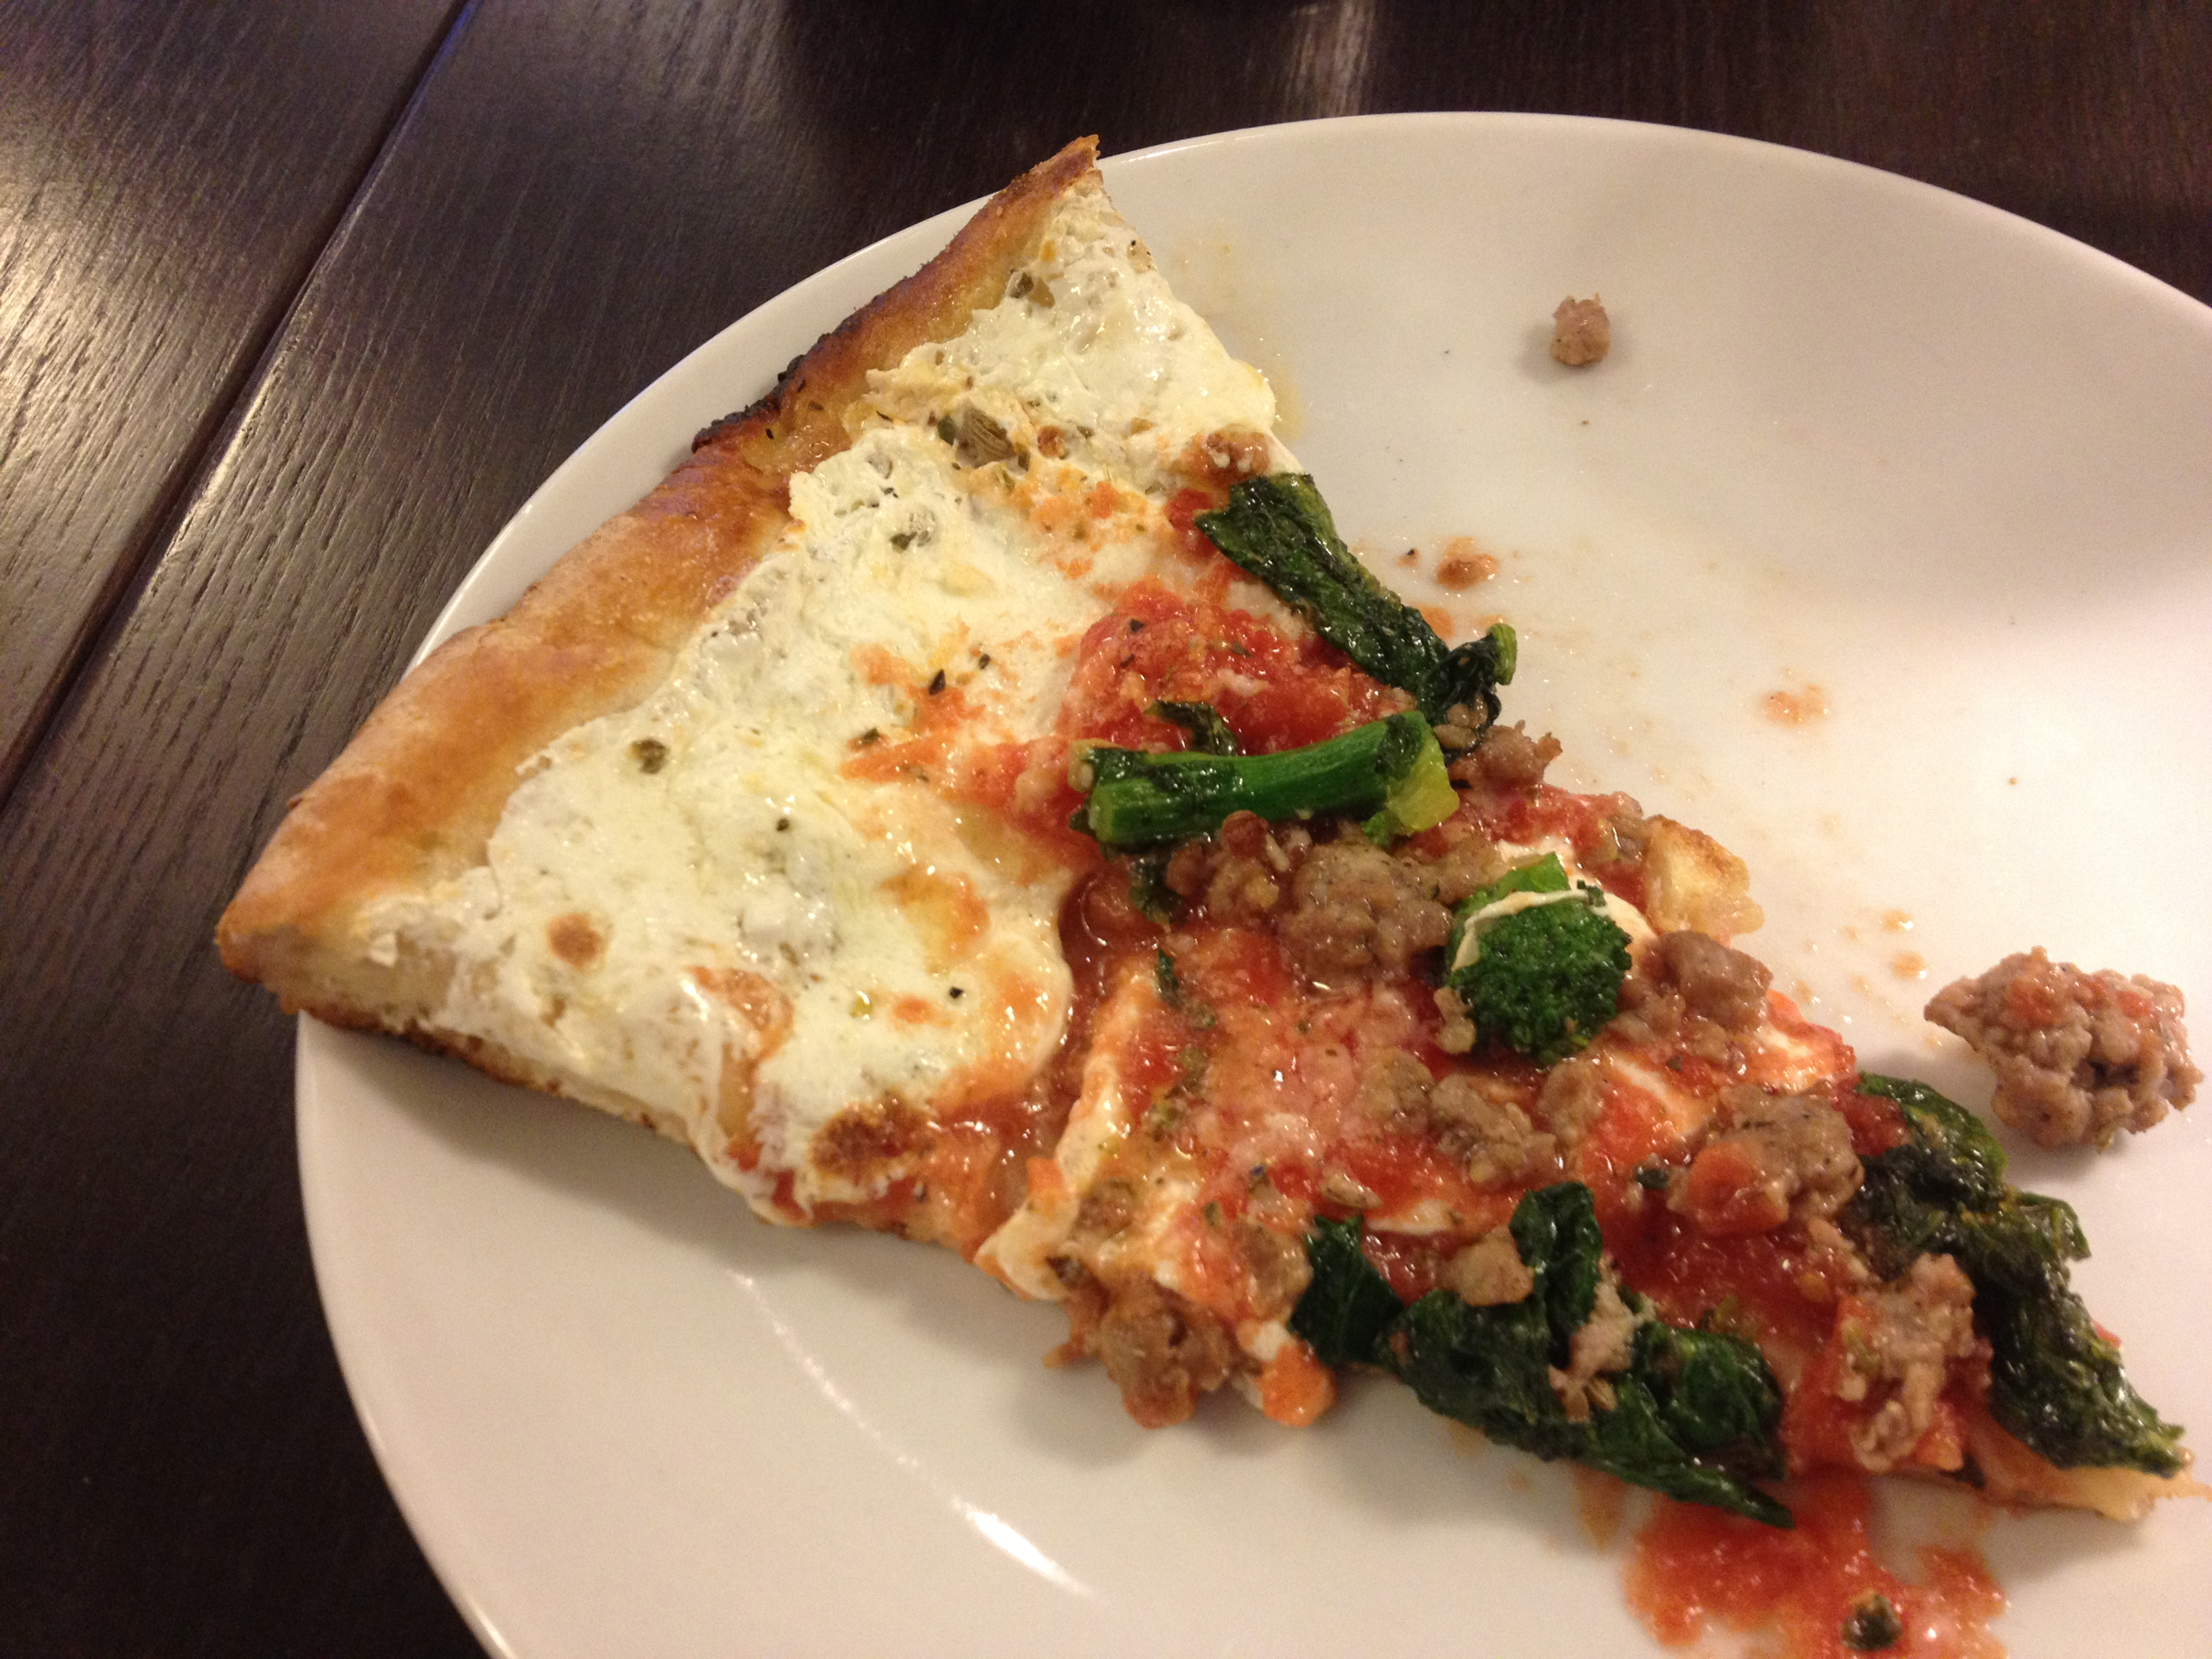 Sausage, Broccoli Rabe, Garlic Pie at JULIANA'S